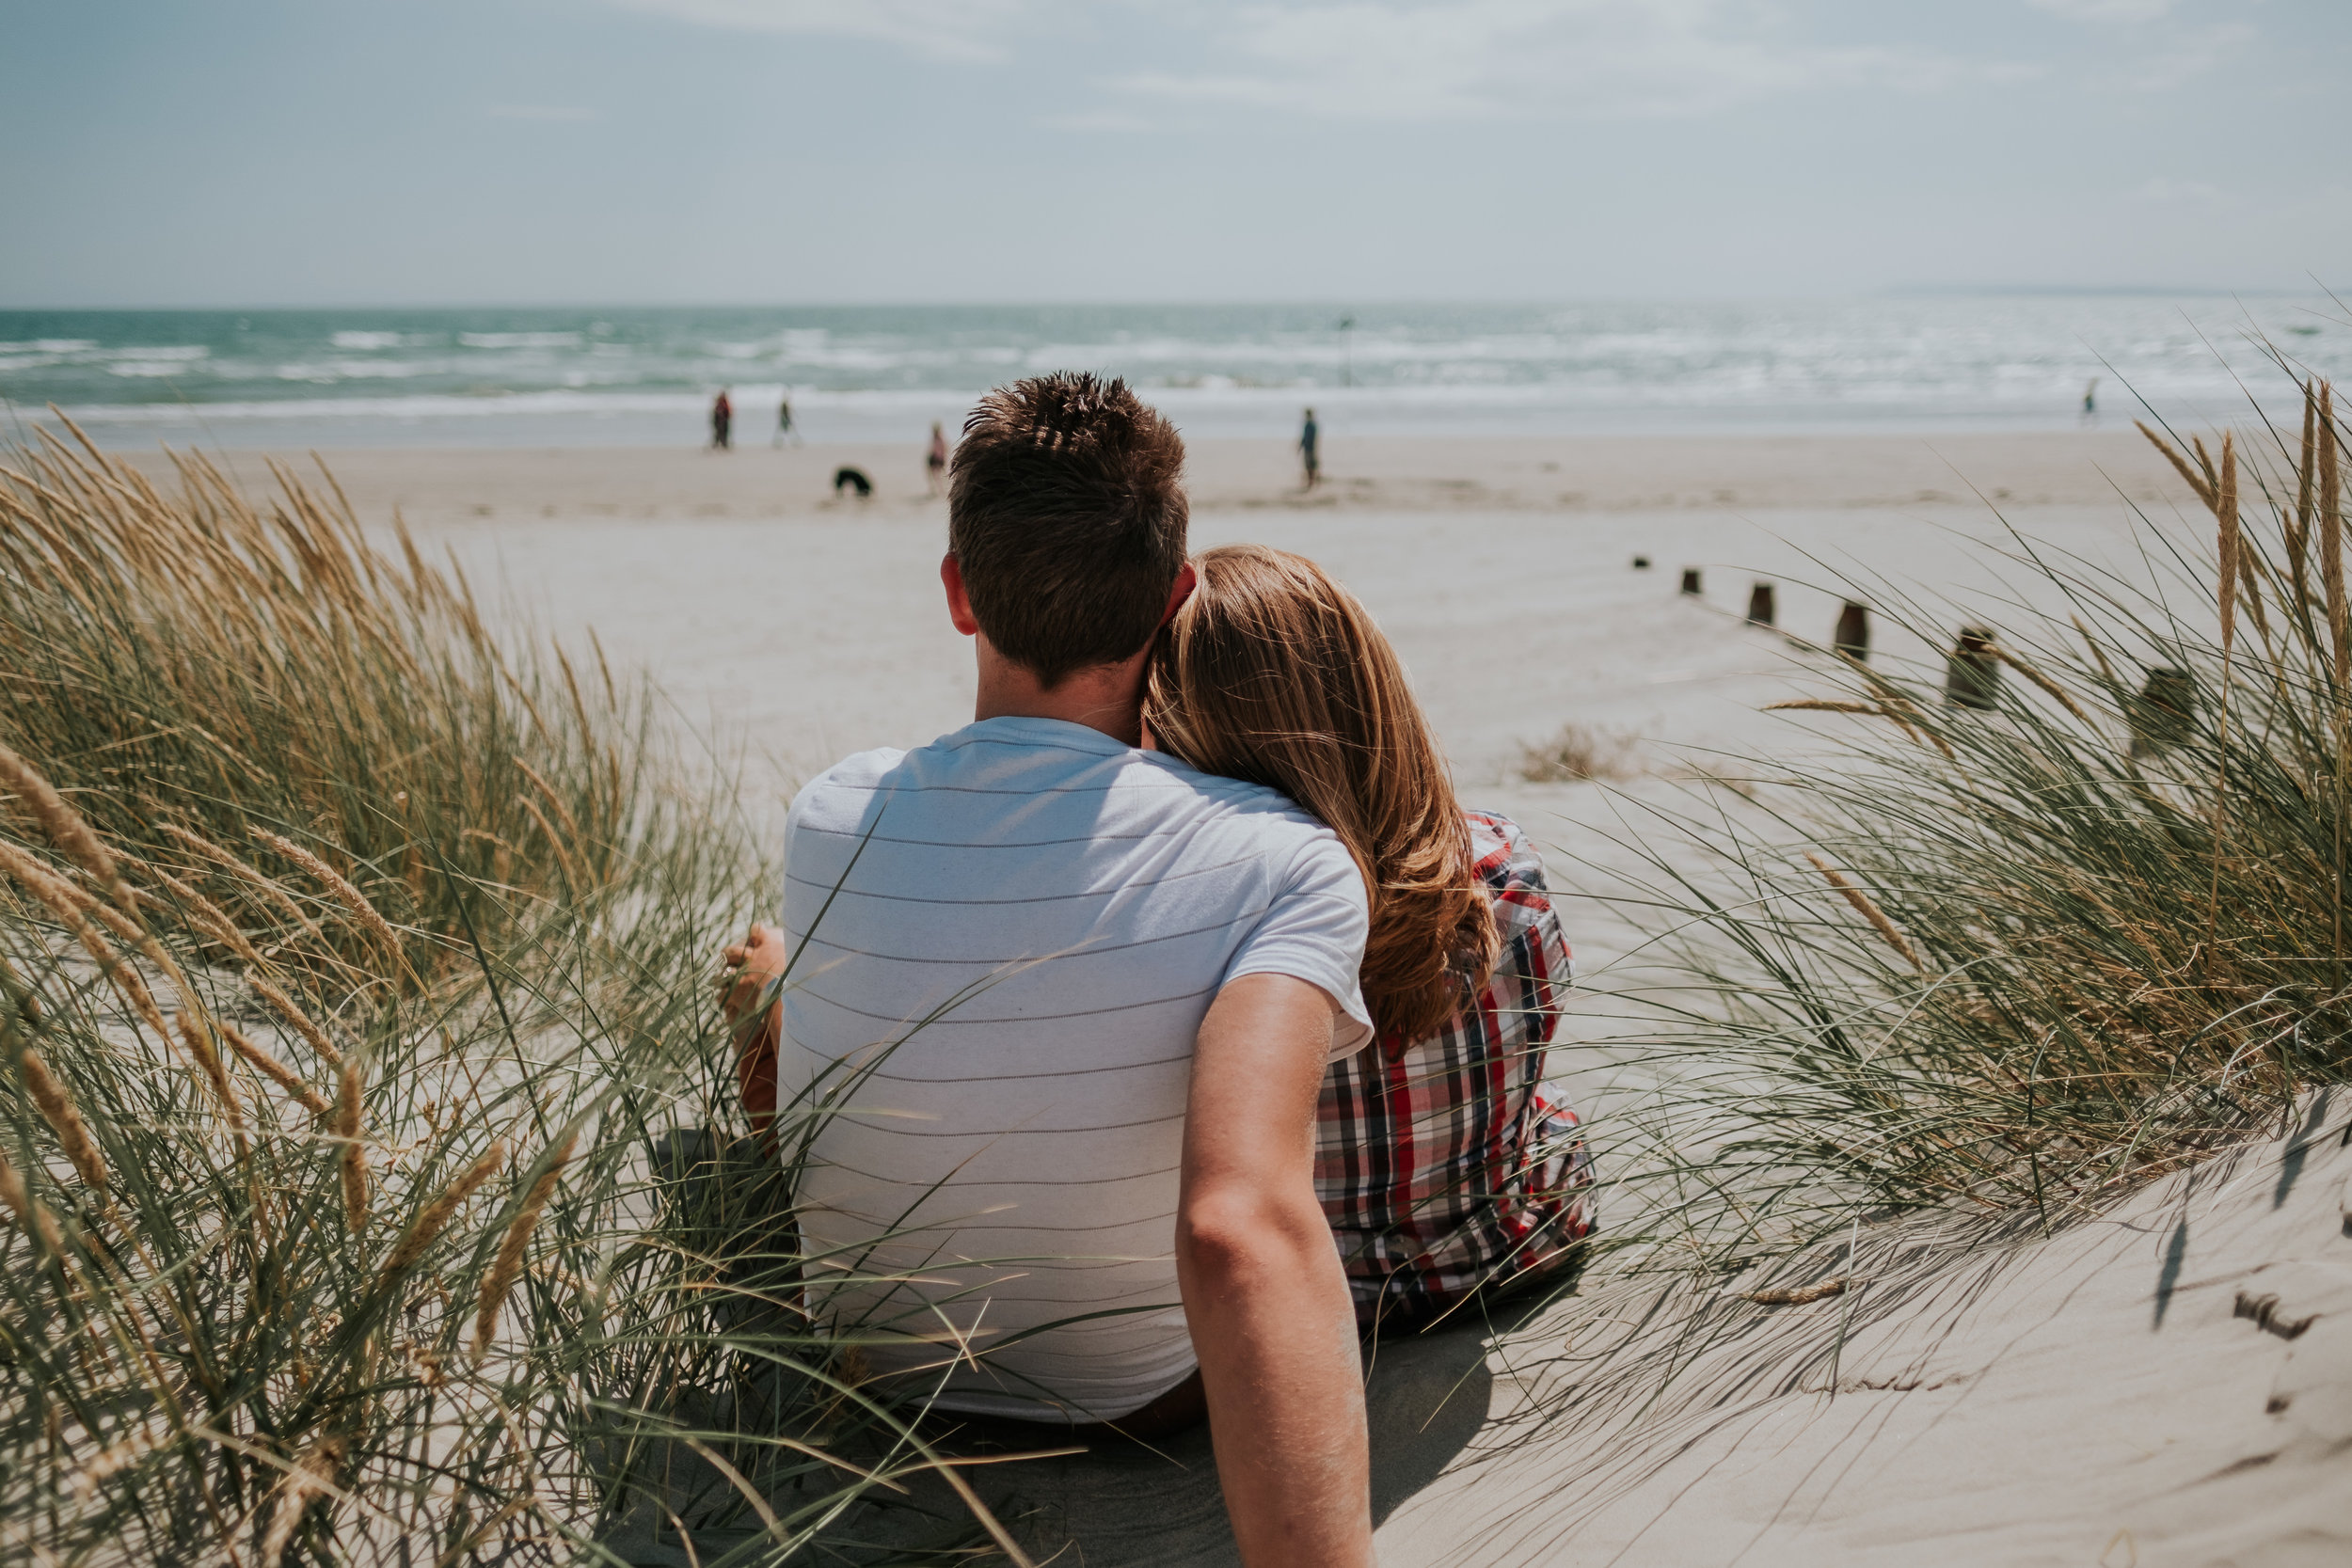 West Wittering Engagement Shoot Sussex Wedding Photographer Southend Barns Joanna Nicole Photography Cool Creative Fun Alternative 5.jpg